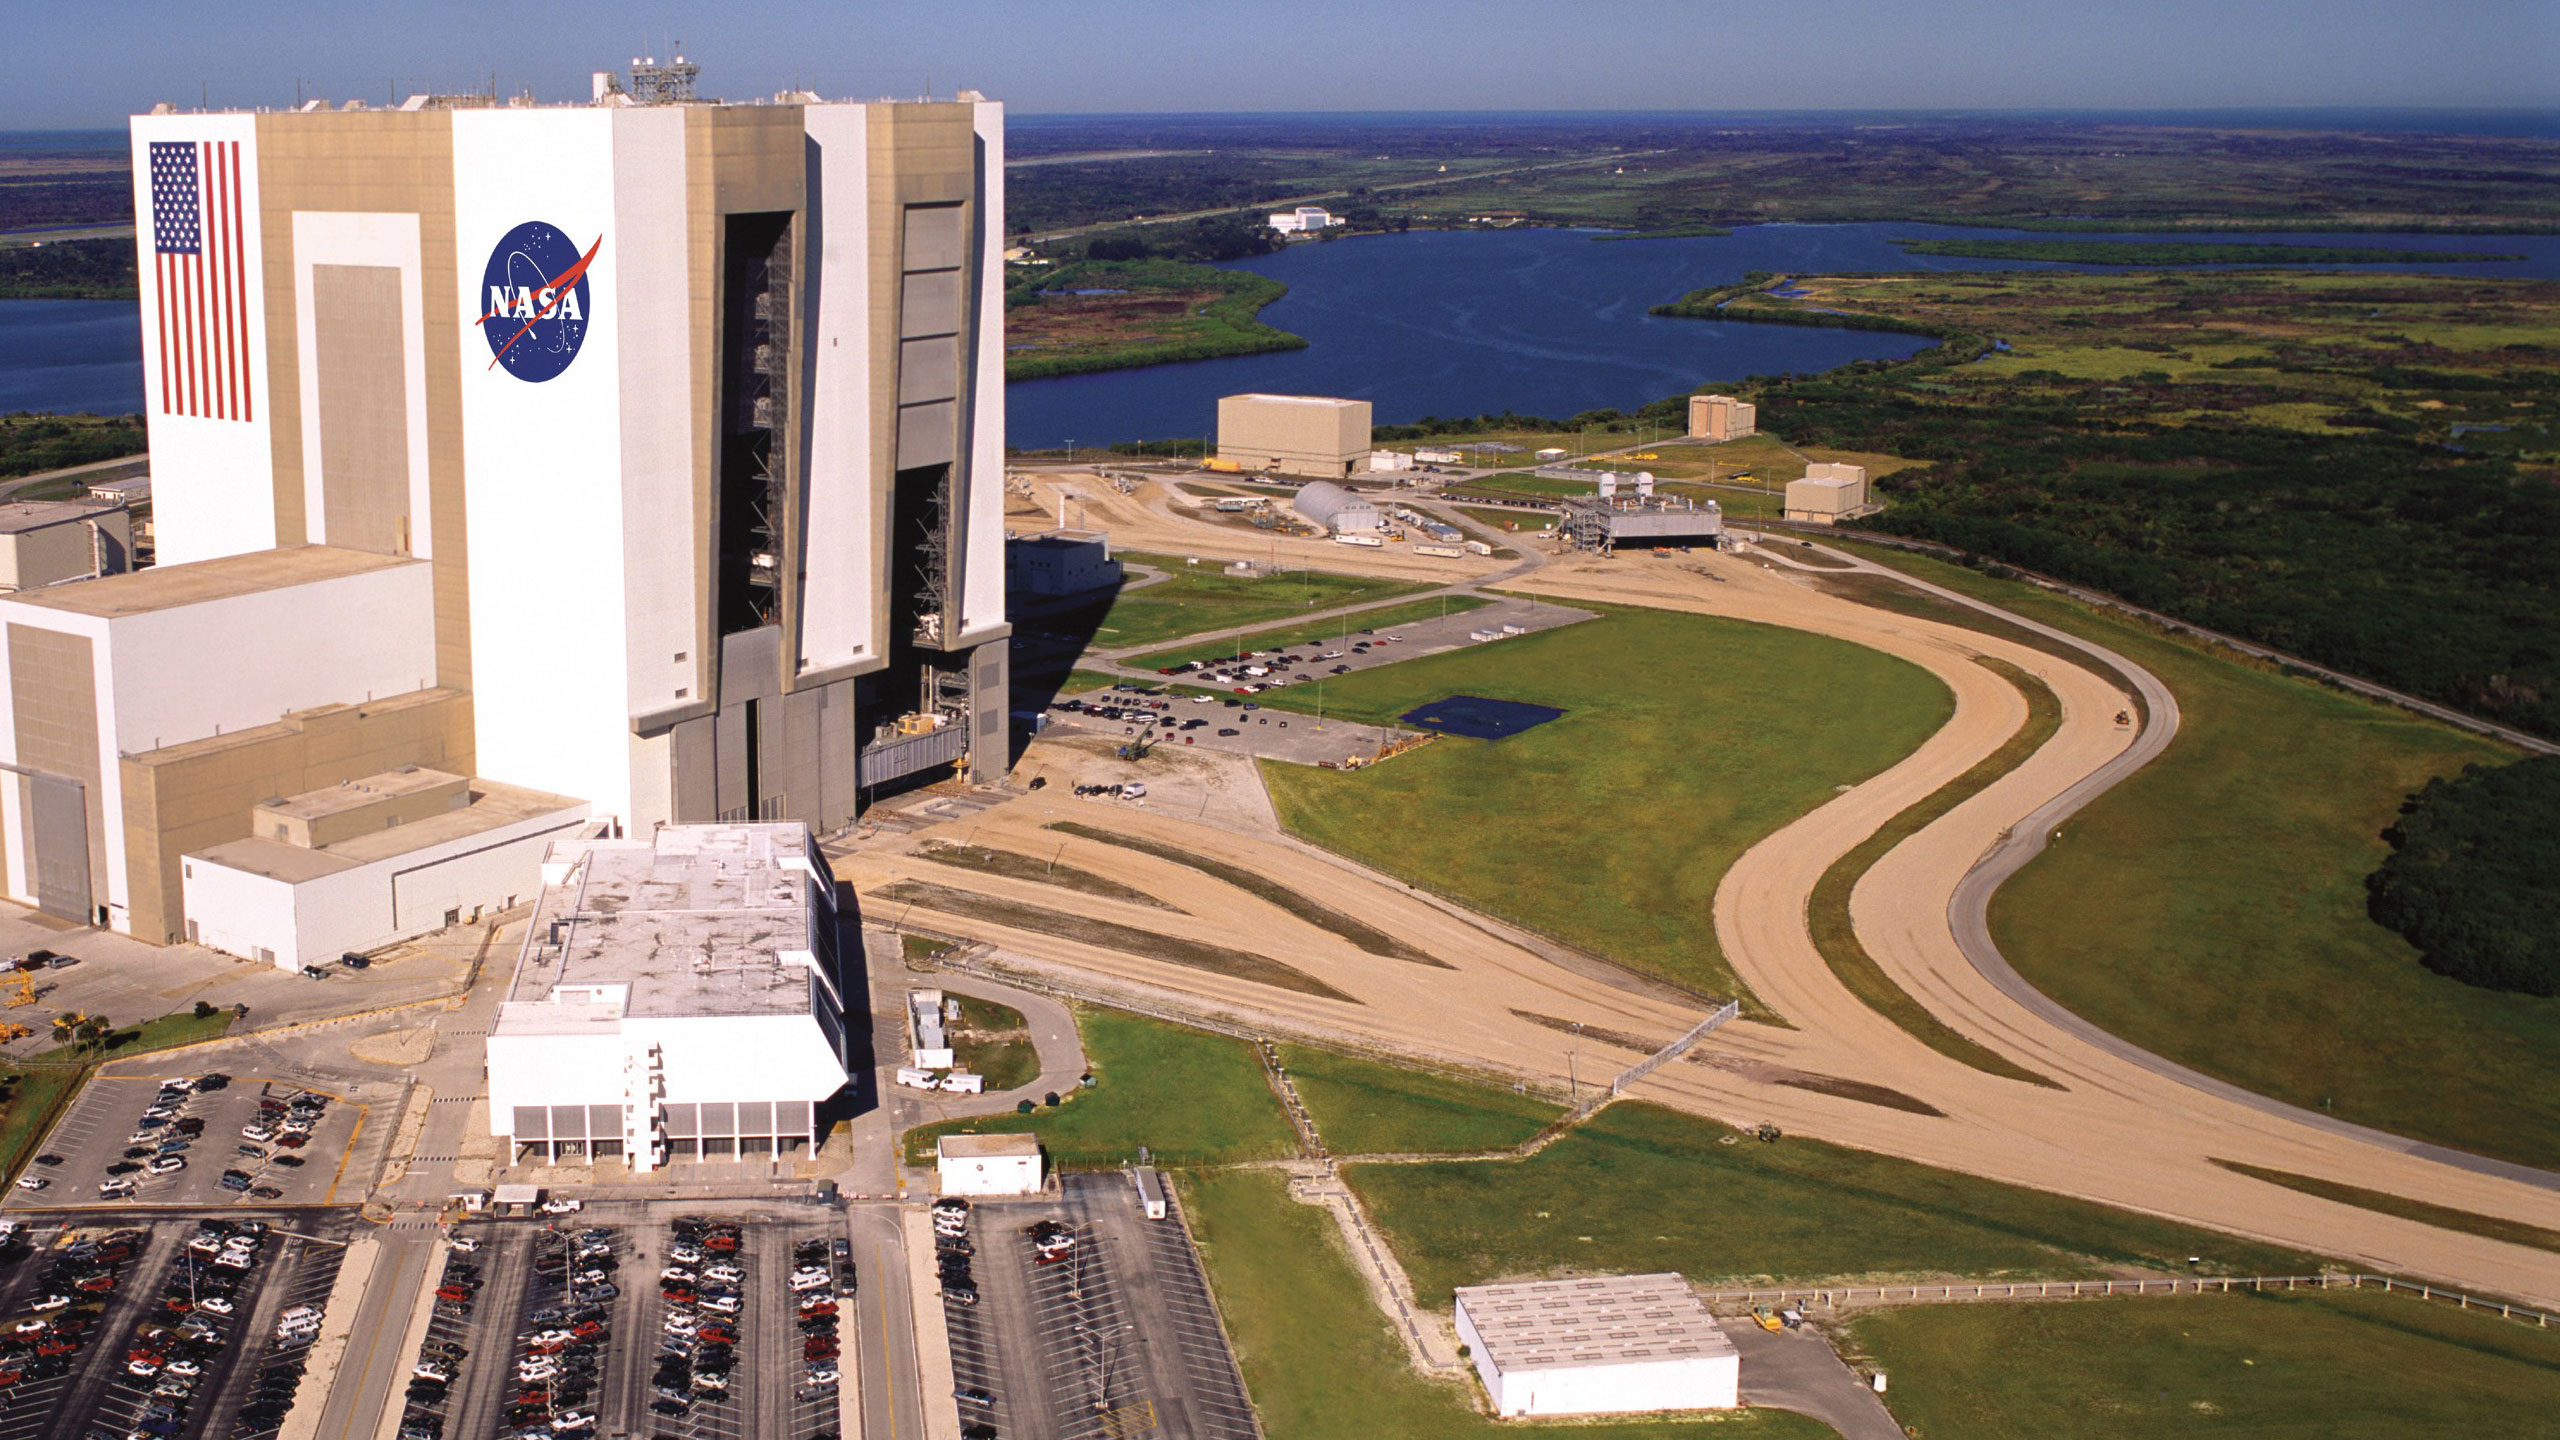 This is an overview image of the Kennedy Space Center